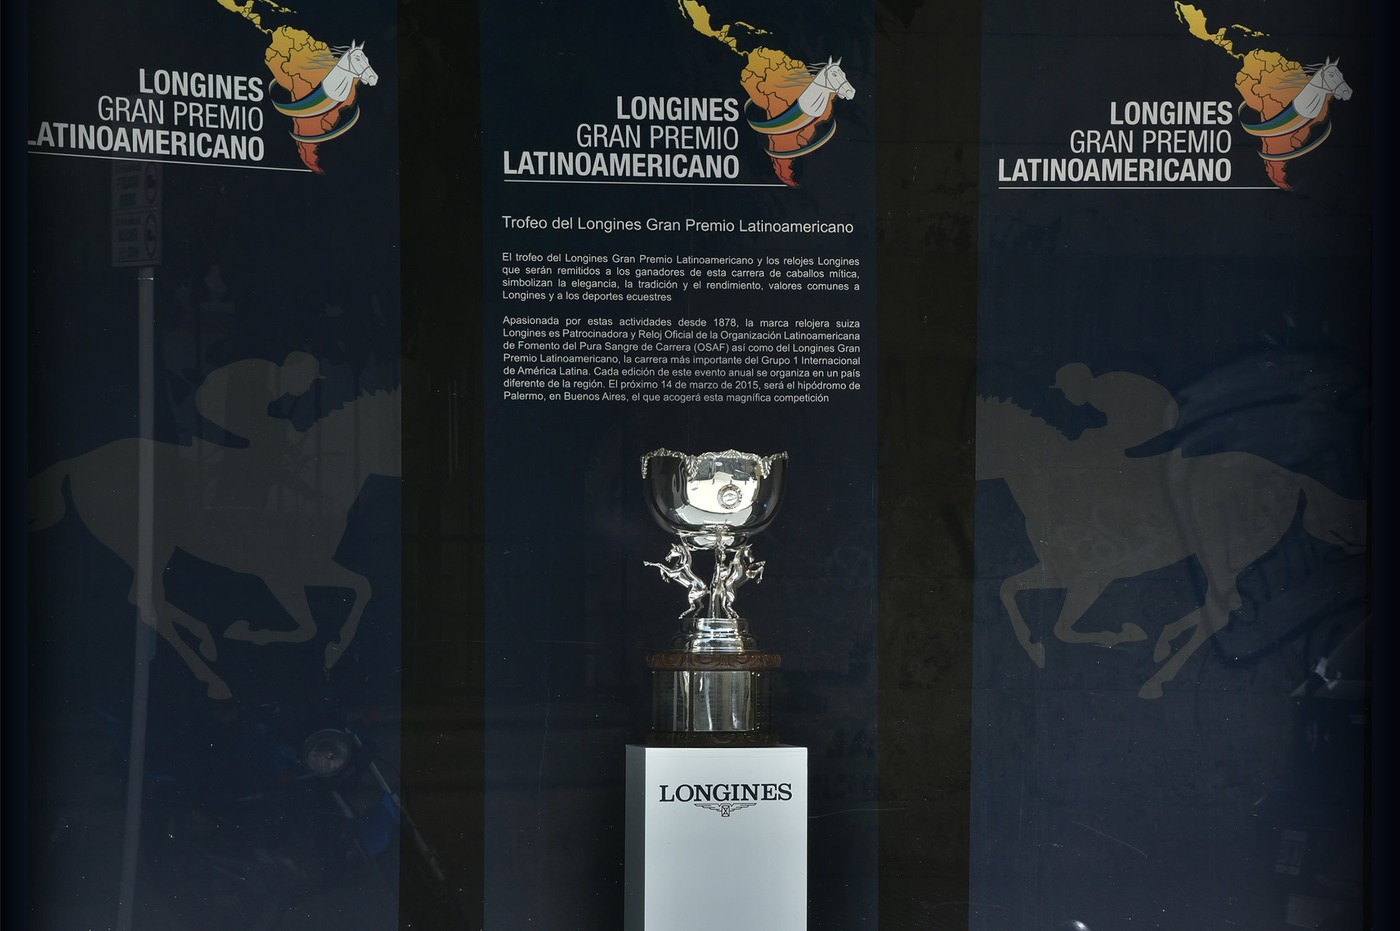 Longines Flat Racing Event: The 2015 Longines Gran Premio Latinoamericano 3